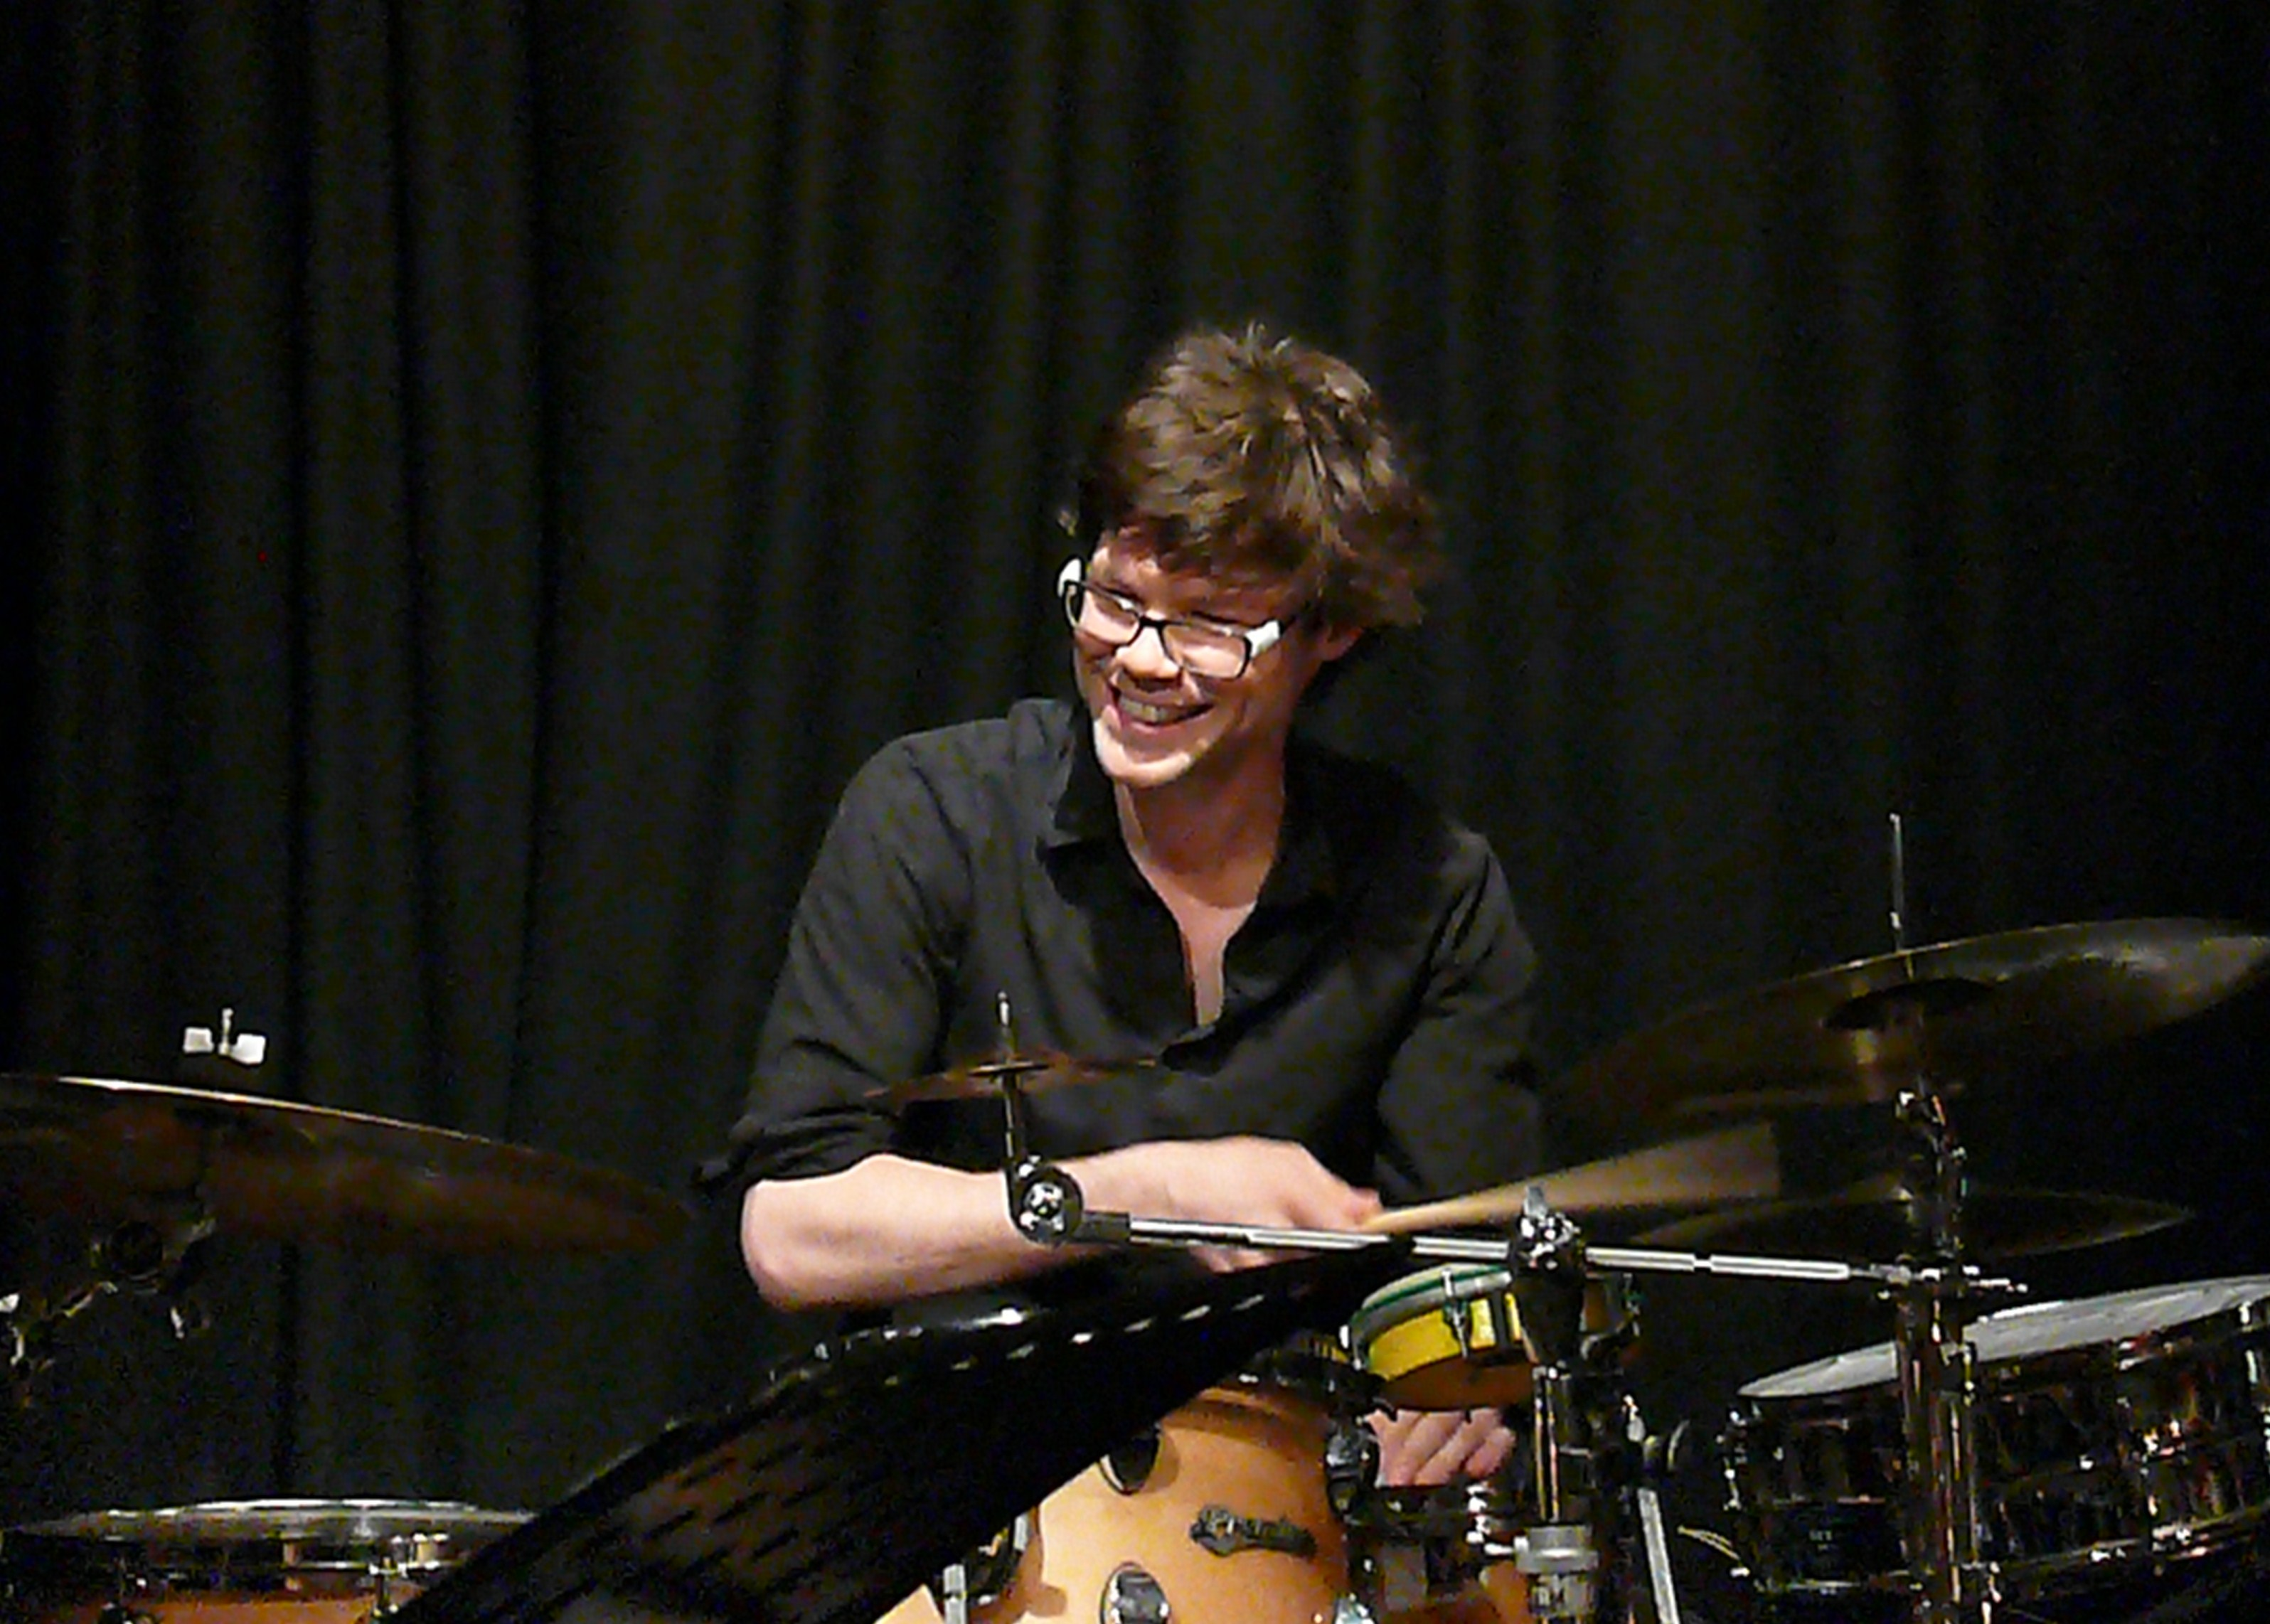 Kevin O'Shea at the Vortex in July 2011